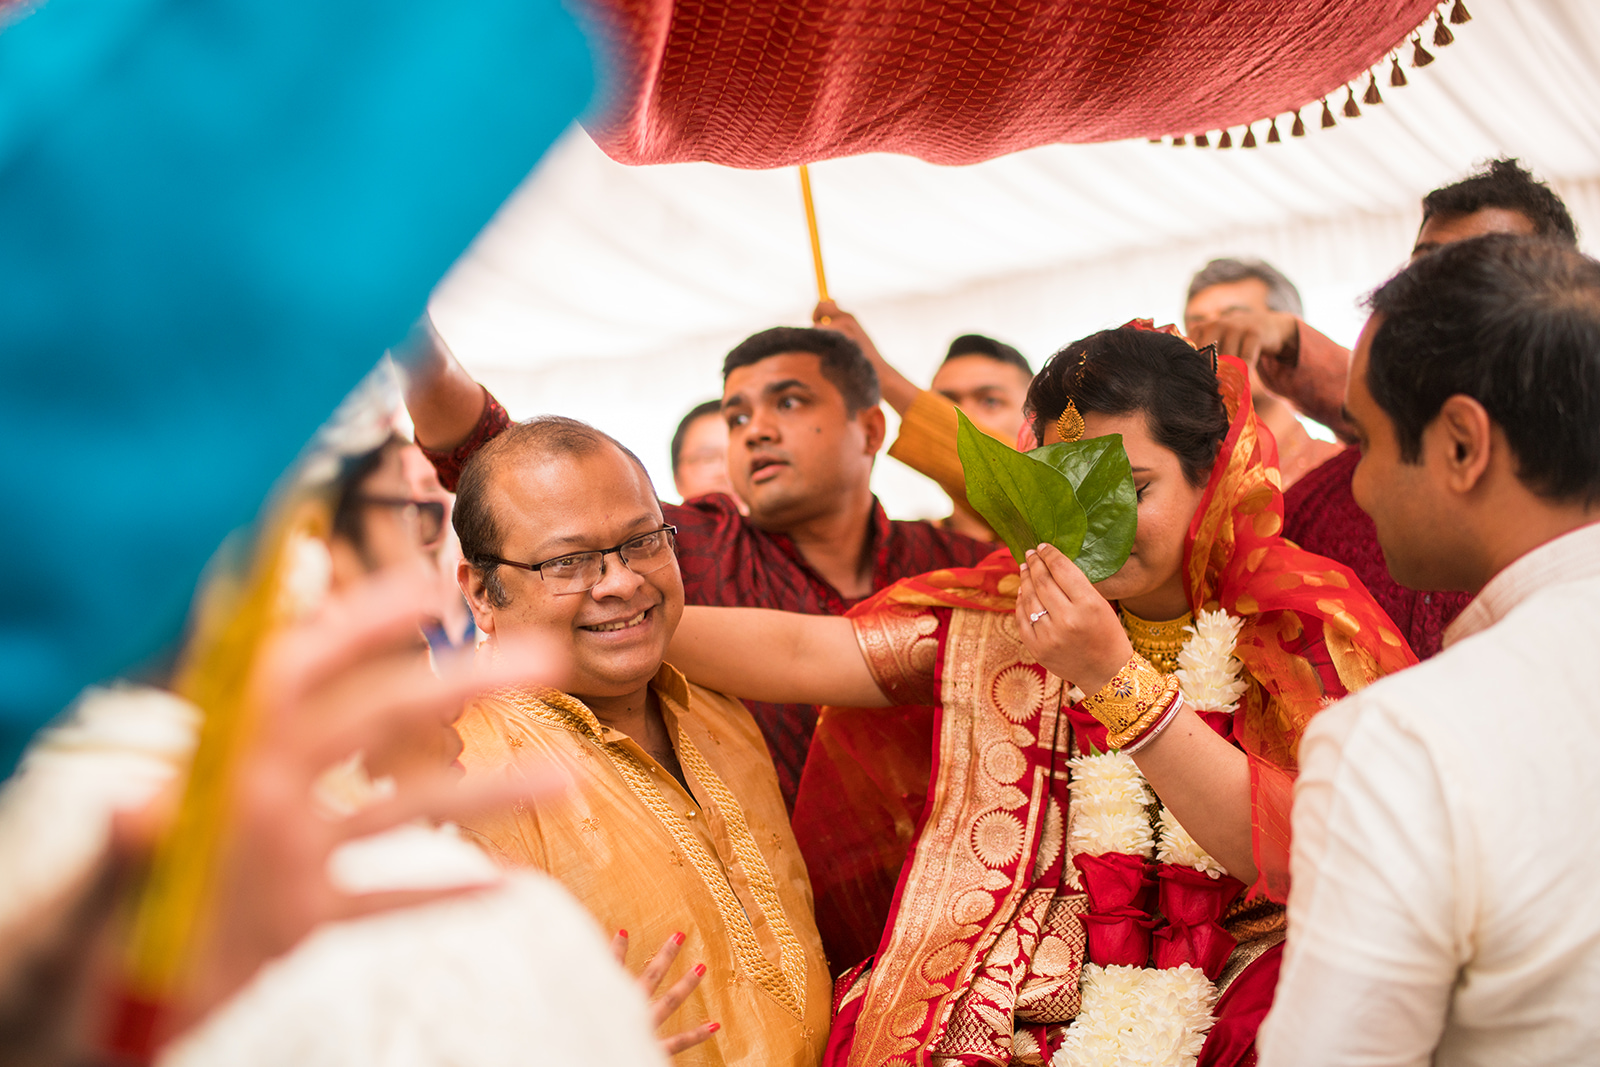 Le Cape Weddings - South Asian Wedding - Ishani and Sidhart - Ceremony-25.jpg